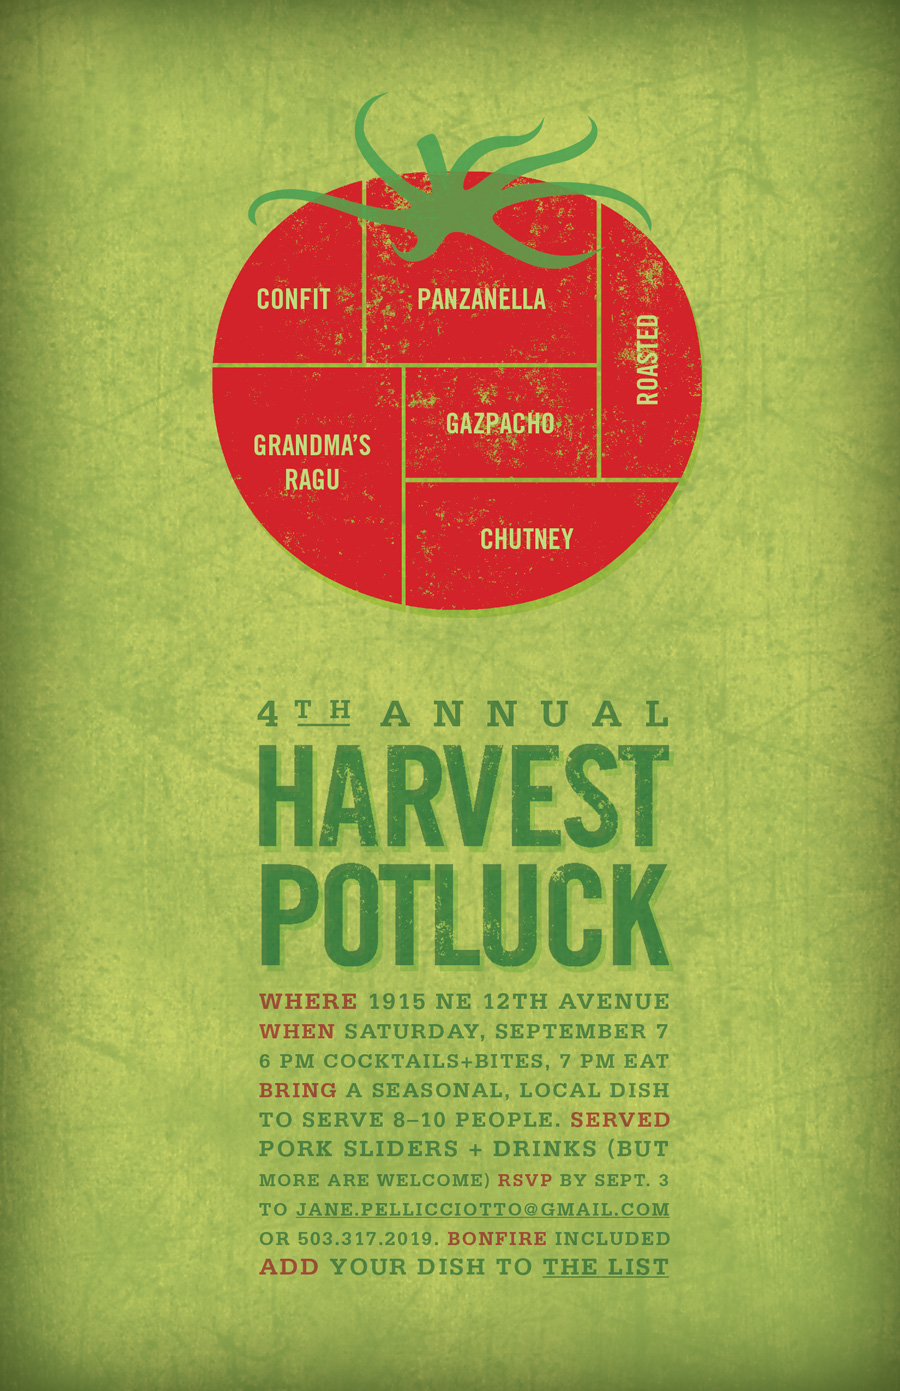 Invitation design for seasonal potluck gathering. Allegro Design